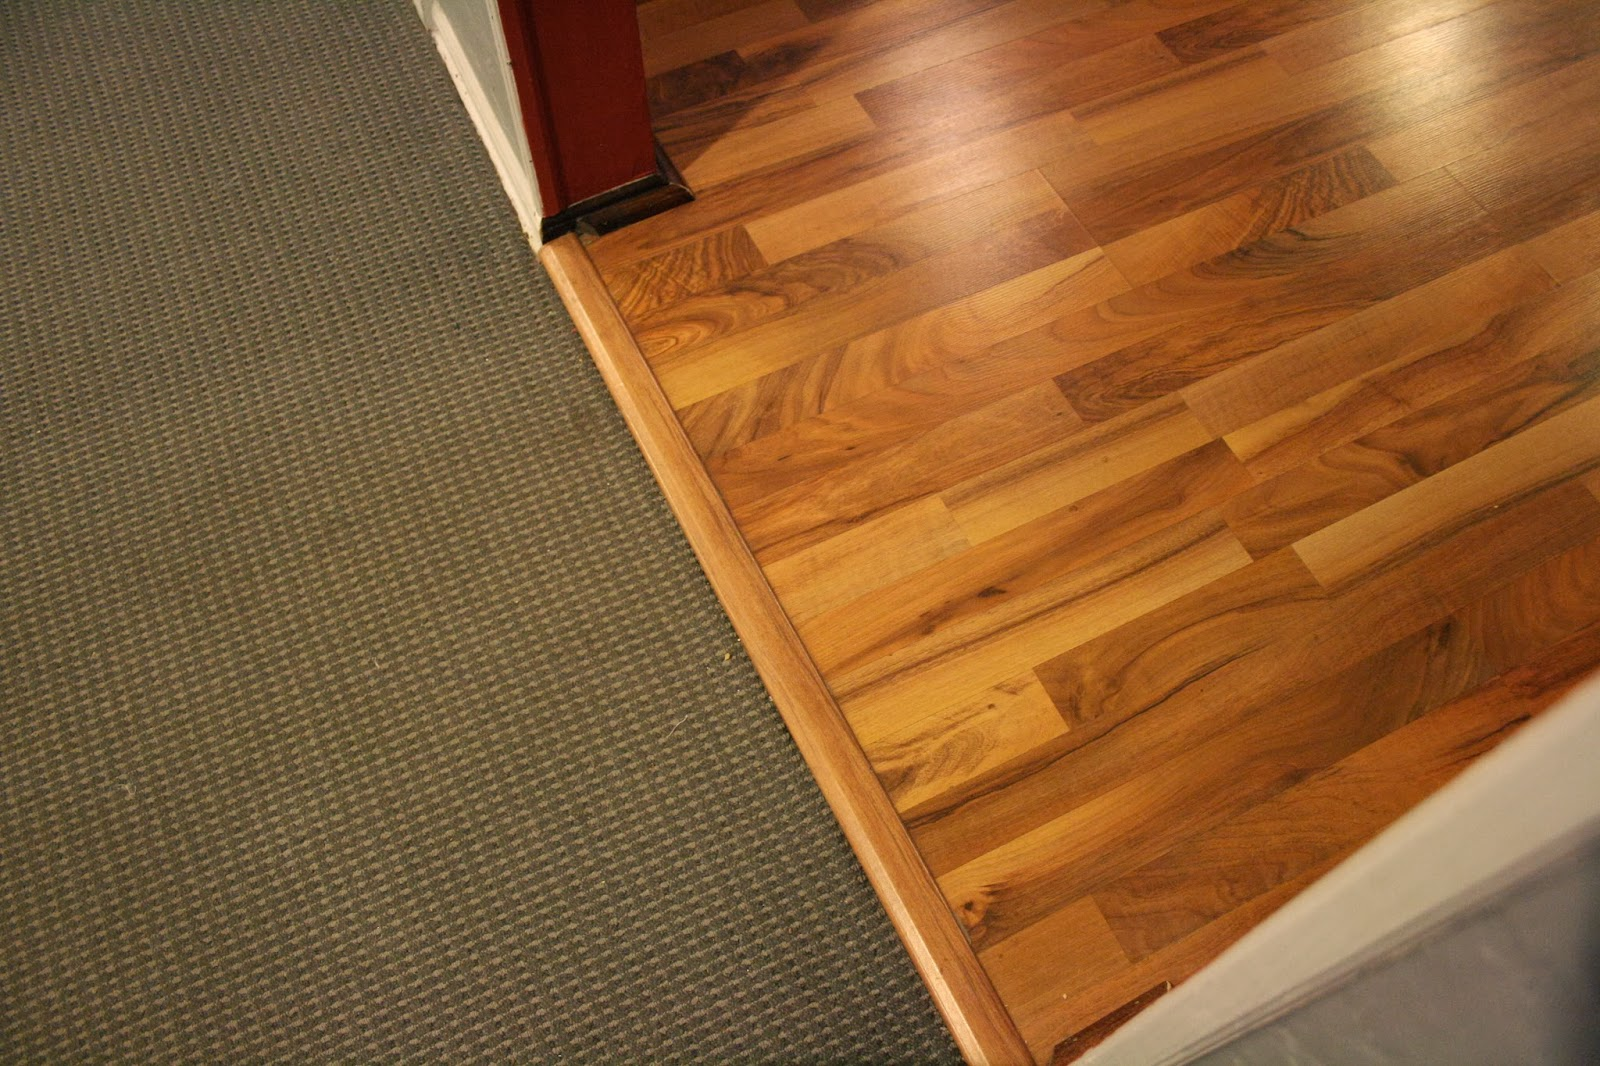 Flooring for kitchen and family room - Finding A Flooring That Was Kind Of Close But Not Close Enough Would Seem Like A Mistake So We Decided To Go Different This Way It Would Seem Like An